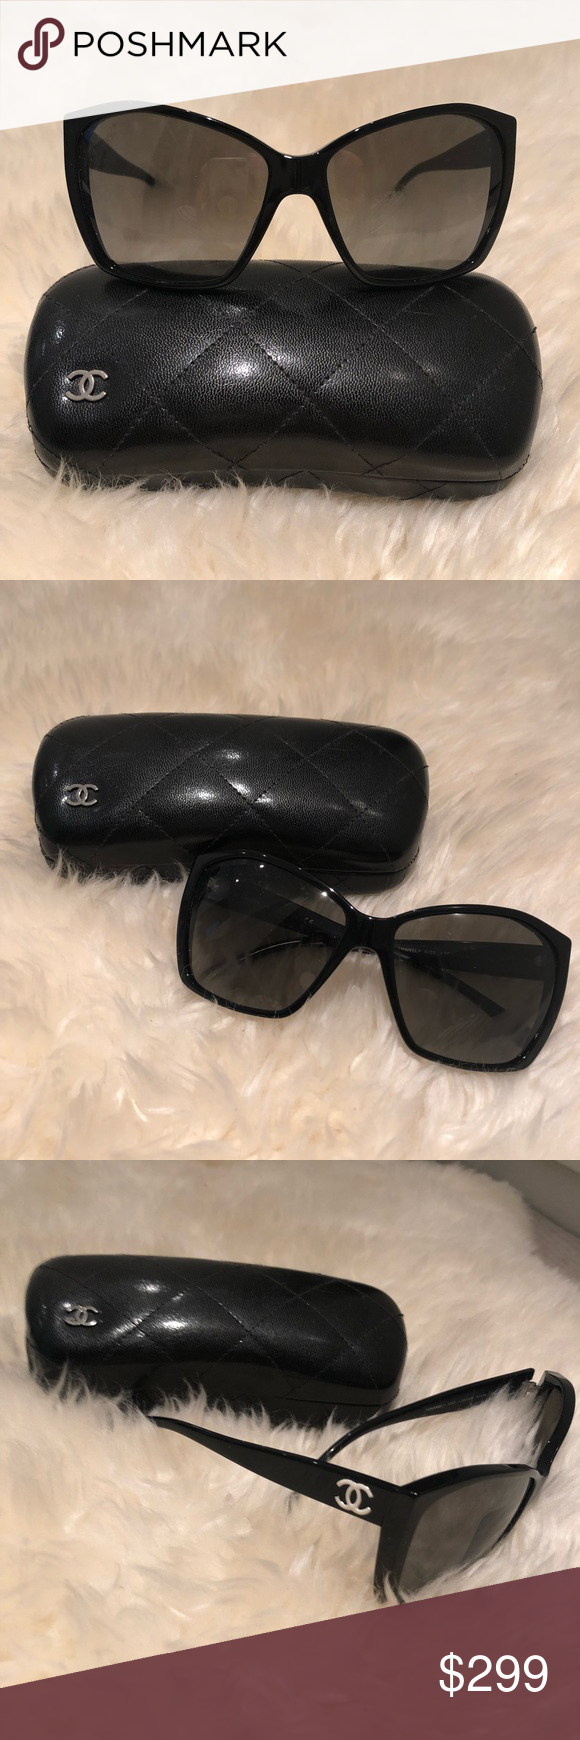 bfc7948e3d57b Black Chanel 5203 Glitter Sunglasses Chanel glitter collection (glitter on  lenses) angular cat sunglasses in black. Great condition